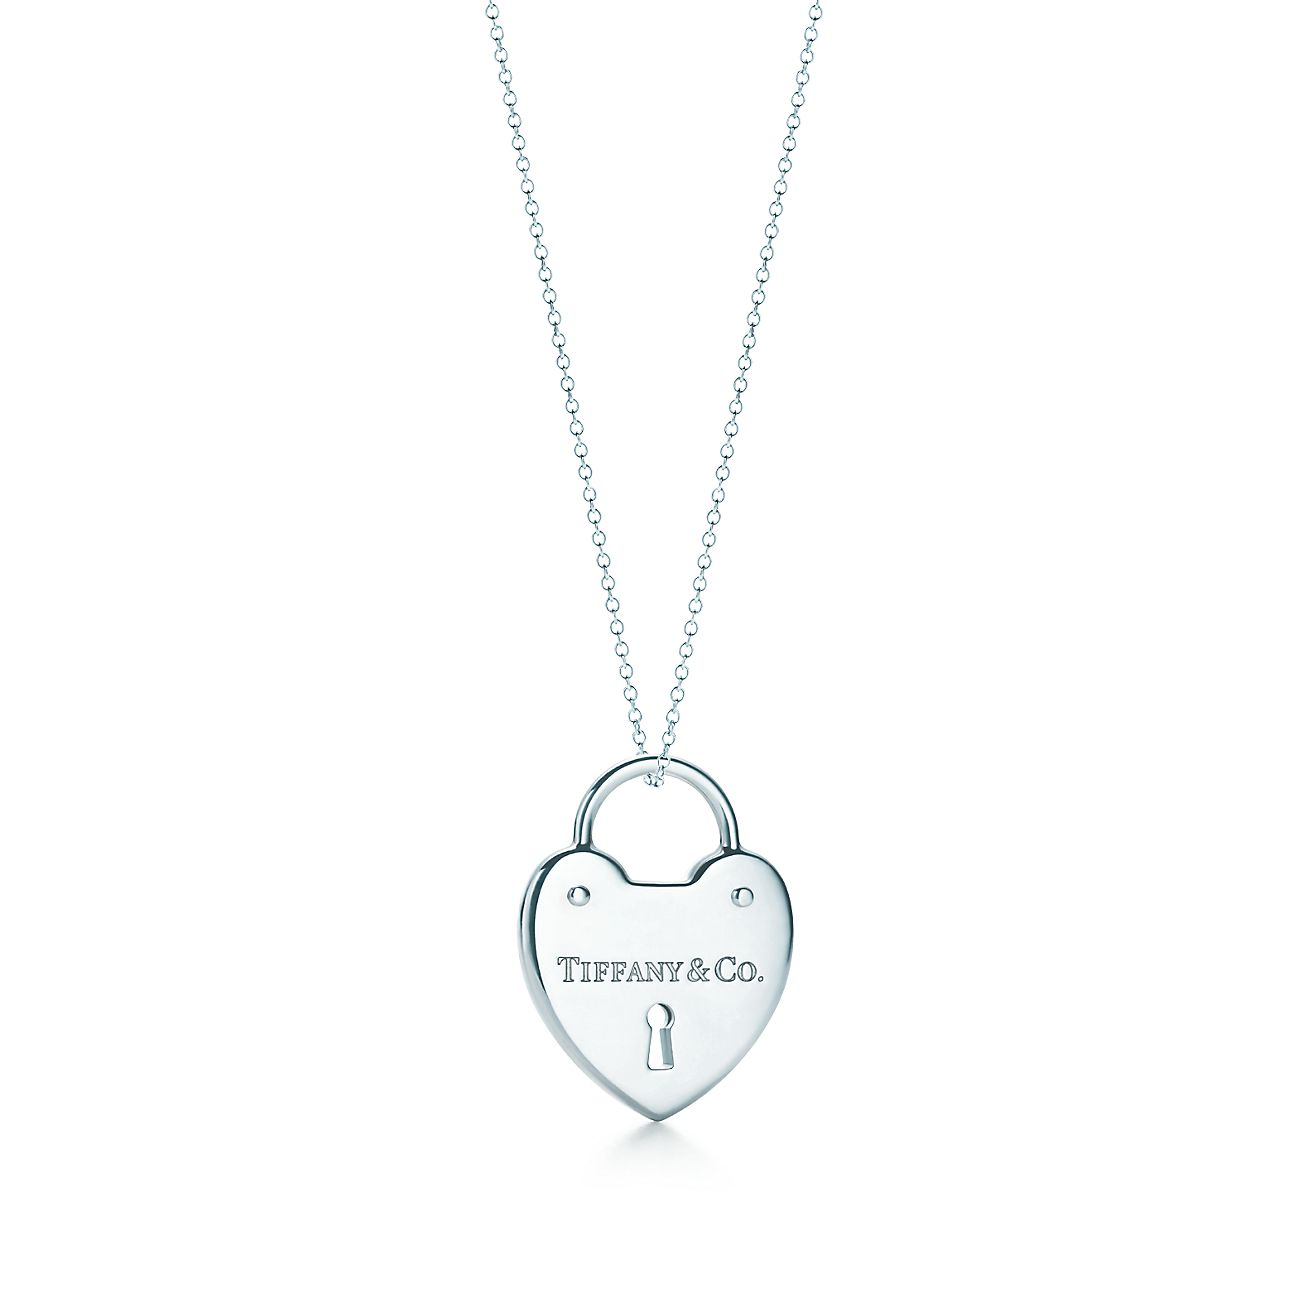 Tiffany locks heart lock pendant in sterling silver on a chain tiffany locksheart lock pendant aloadofball Image collections